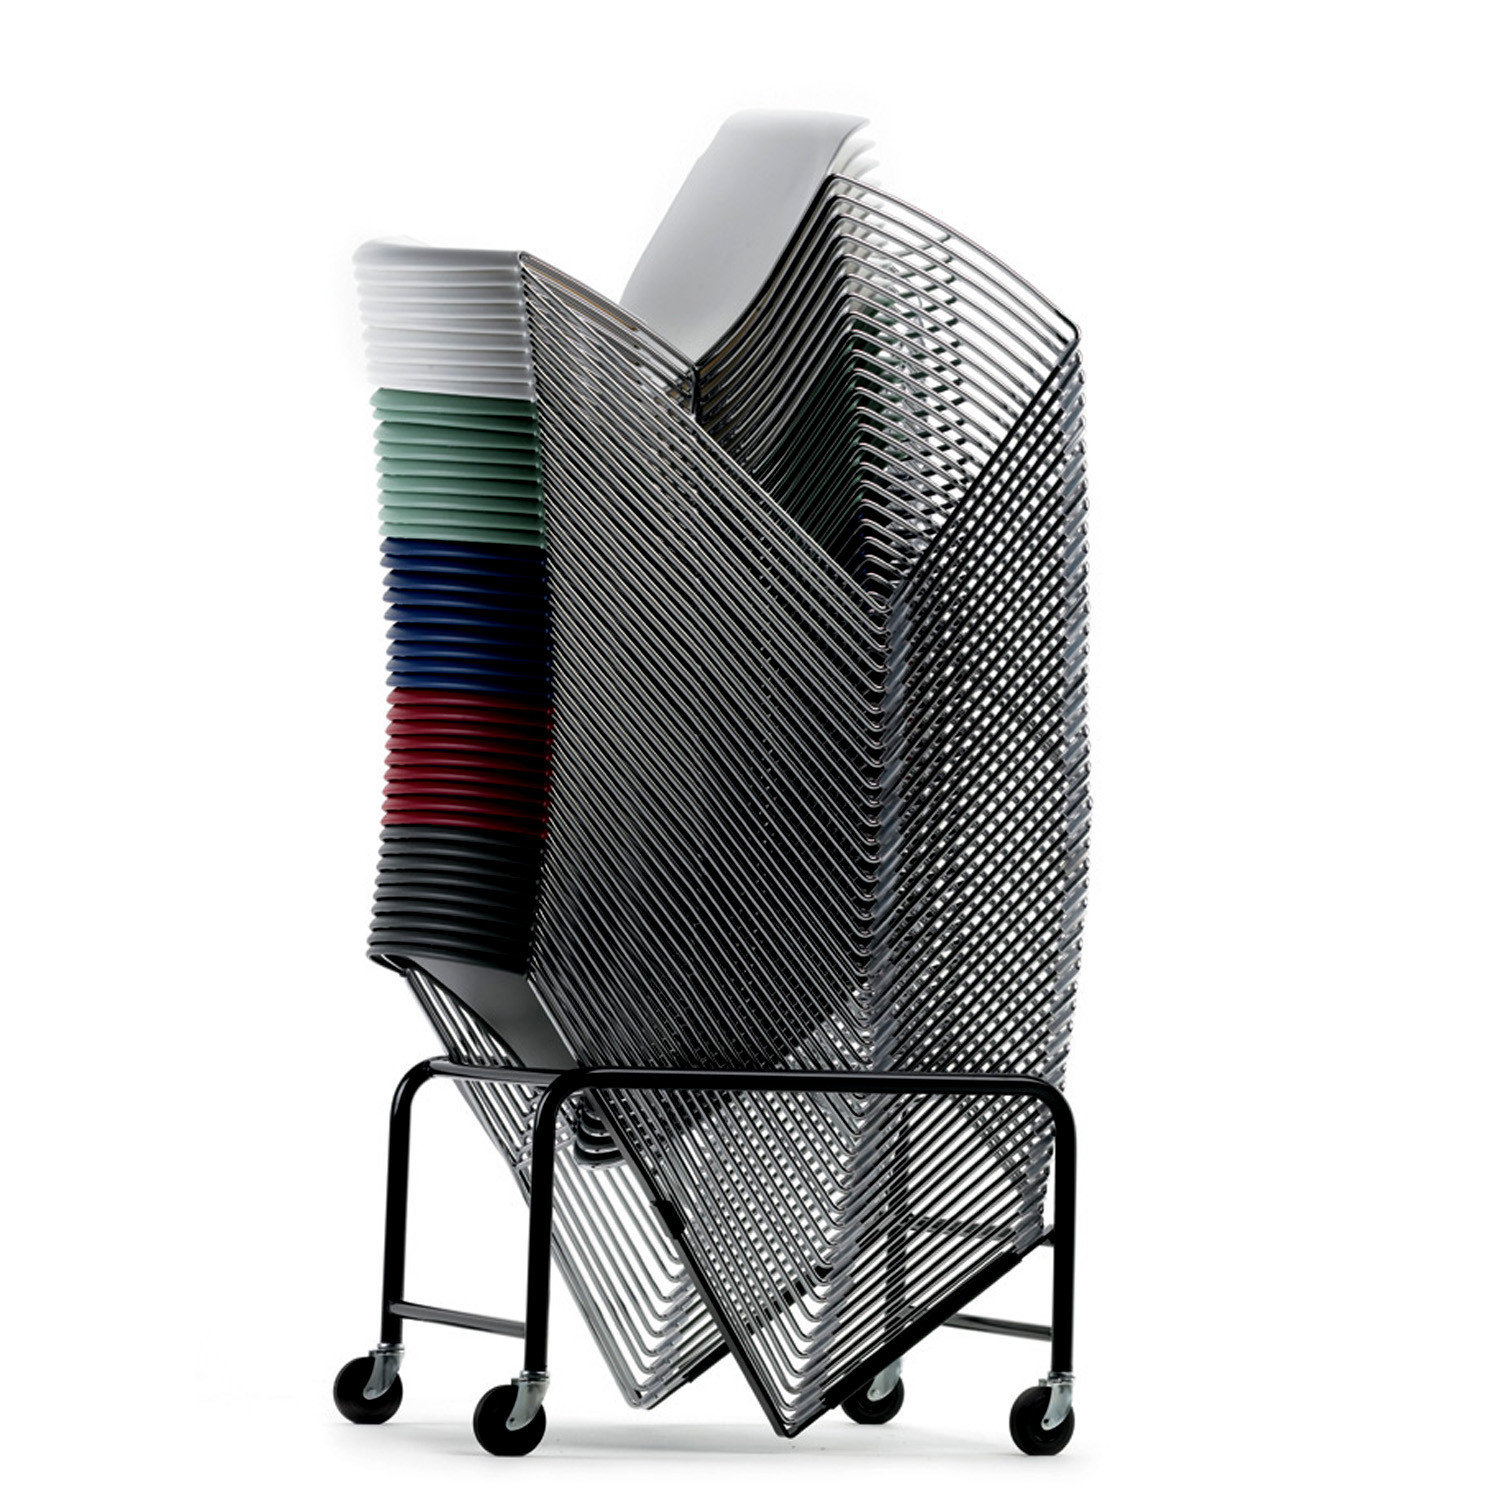 Forma Stacking Chair